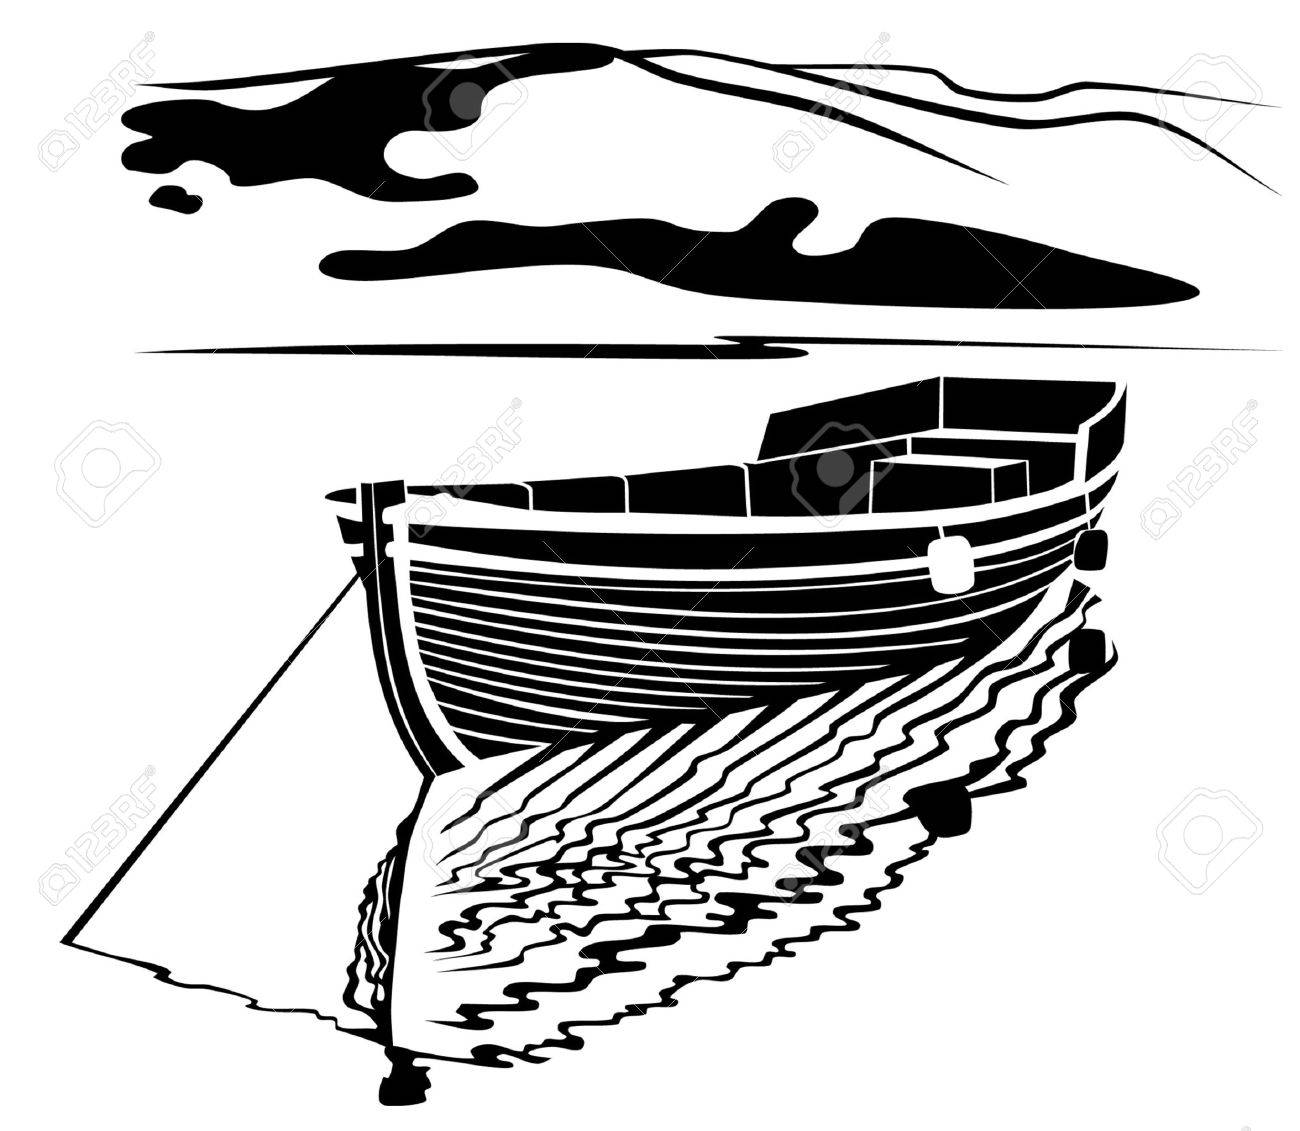 Black And White Image Of Traditional Fisherman Boat Royalty Free Cliparts Vectors And Stock Illustration Image 7000937